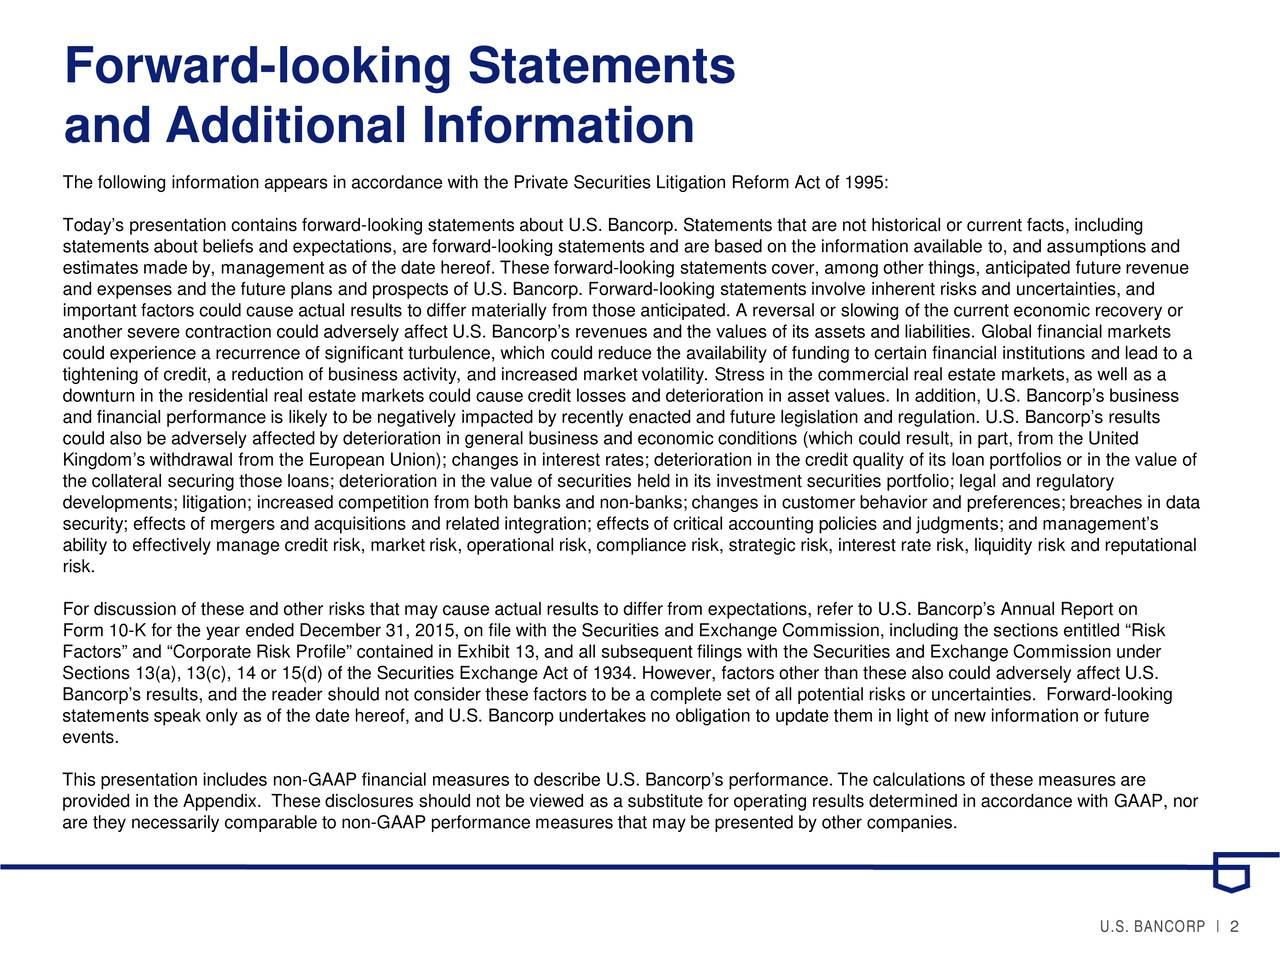 and Additional Information The following information appears in accordance with the Private Securities Litigation Reform Act of 1995: Todays presentation contains forward-looking statements about U.S. Bancorp. Statements that are not historical or current facts, including statements about beliefs and expectations, are forward-looking statements and are based on the information available to, and assumptions and estimates made by, management as of the date hereof. These forward-looking statements cover, among other things, anticipated future revenue and expenses and the future plans and prospects of U.S. Bancorp. Forward-looking statements involve inherent risks and uncertainties, and important factors could cause actual results to differ materially from those anticipated. A reversal or slowing of conomic recovery or another severe contraction could adversely affect U.S. Bancorps revenues and the values of its assets and liabilities. Global financial markets could experience a recurrence of significant turbulence, which could reduce the availability of funding to certain financialinstitutions and lead to a tightening of credit, a reduction of business activity, and increased market volatility. Stress in the commercial real estatemarkets, as well as a downturn in the residential real estate markets could cause credit losses and deterioration in asset values. In addition, U.S. Bancorps business and financial performance is likely to be negatively impacted by recently enacted and future legislation and regulation. U.S.Bancorps results could also be adversely affected by deterioration in general business and economic conditions (which could result, in part, from the United Kingdoms withdrawal from the European Union); changes in interest rates; deterioration in the credit quality of its loan potrfolios or in the value of the collateral securing those loans; deterioration in the value of securities held in its investment securities portfolio; legaland regulatory developmen